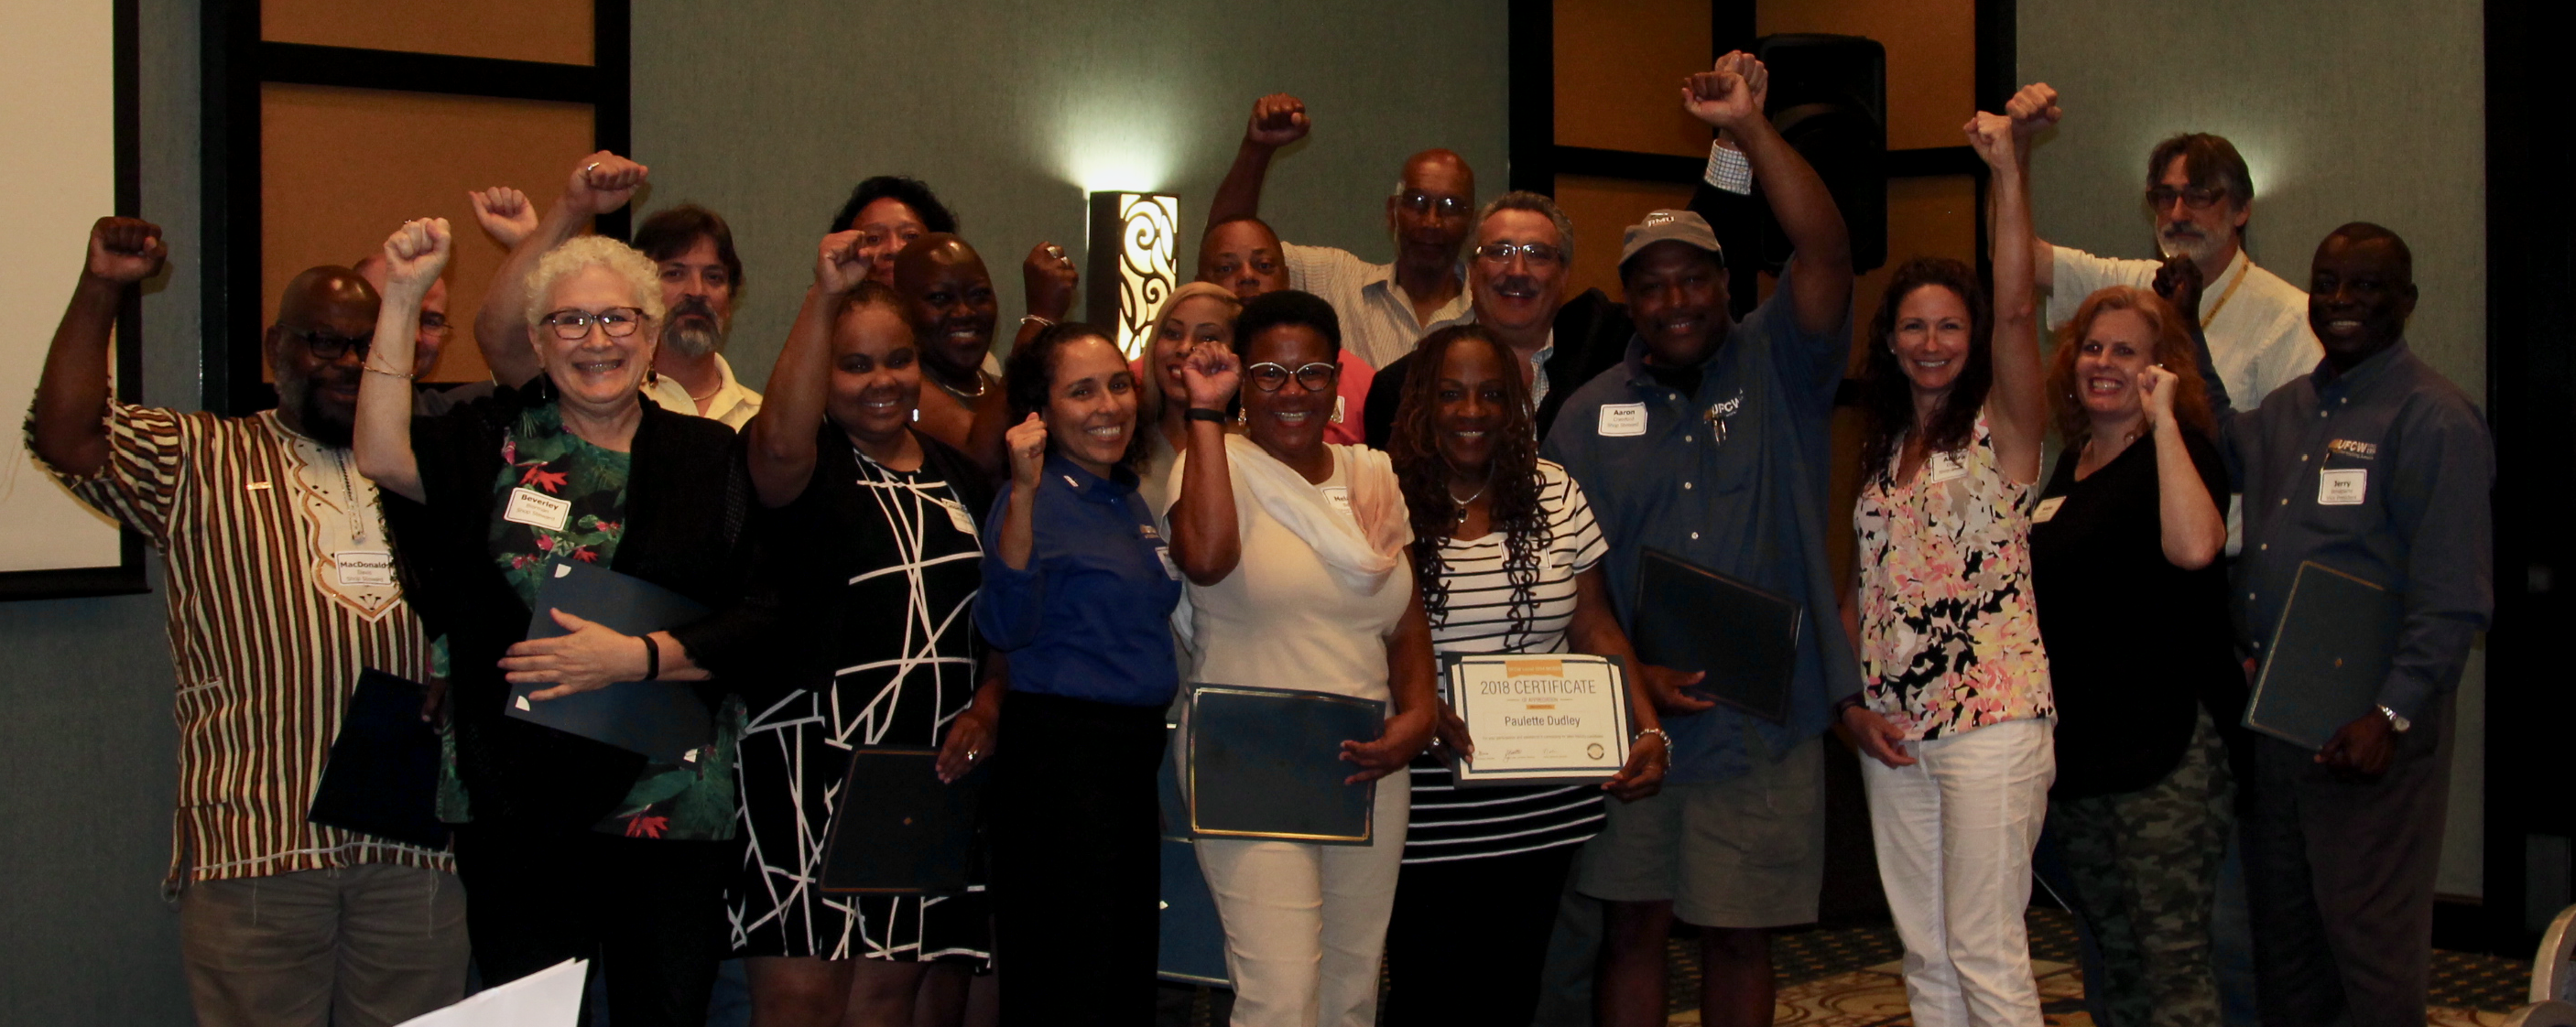 Canvassers Honored at Shop Stewards Seminar